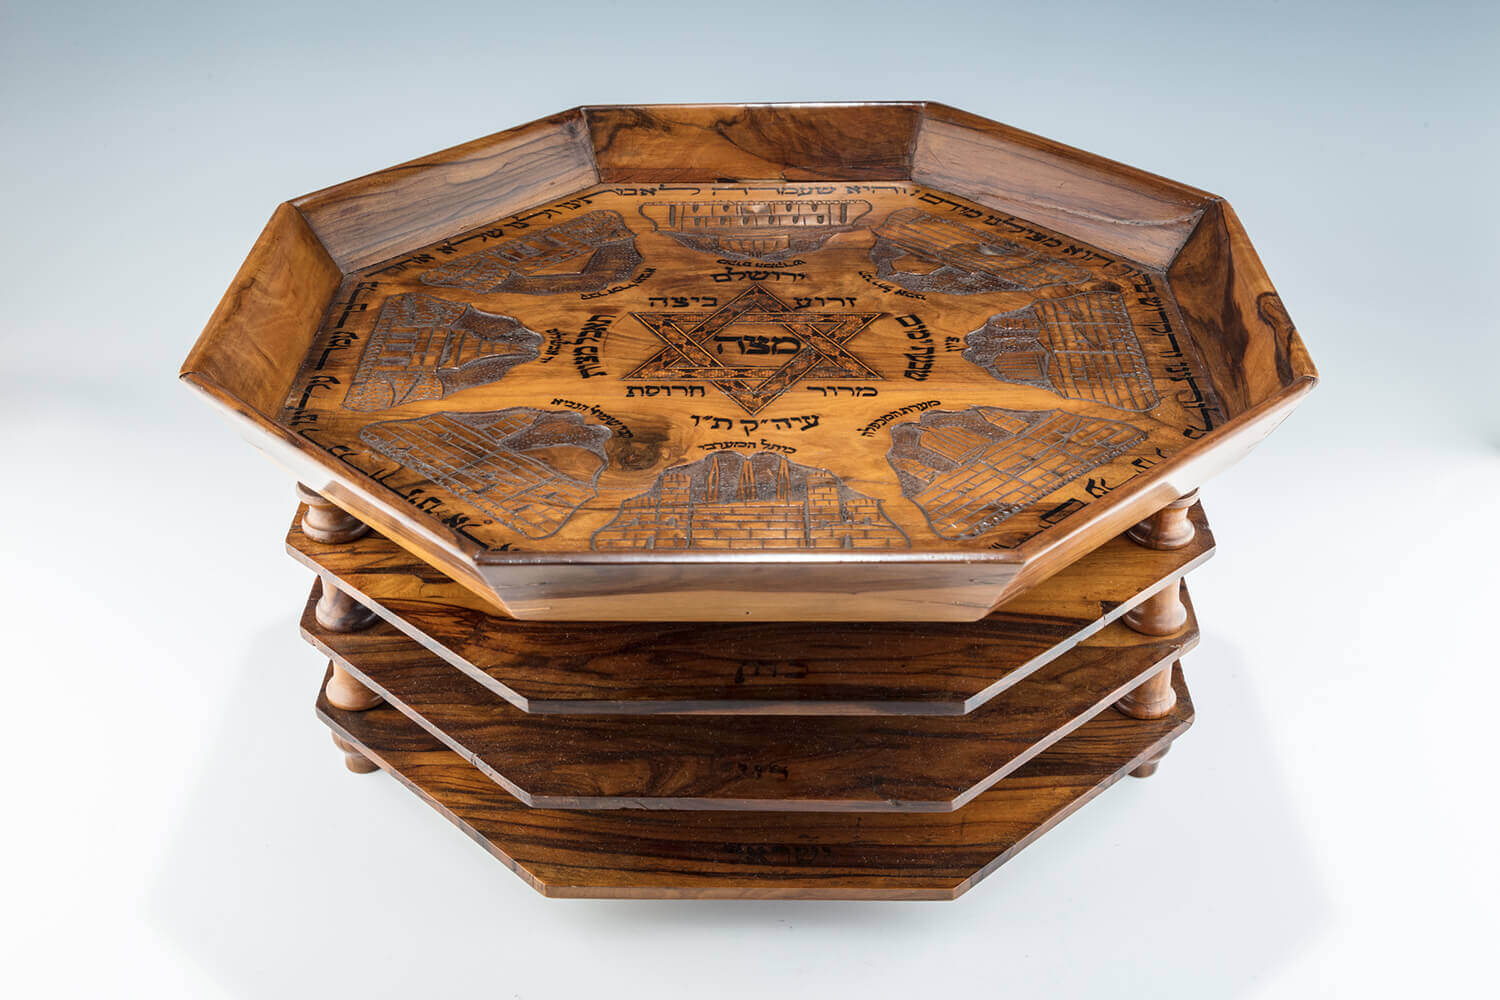 071. A RARE AND IMPORTANT OLIVEWOOD THREE TIER PASSOVER COMPENDIUM